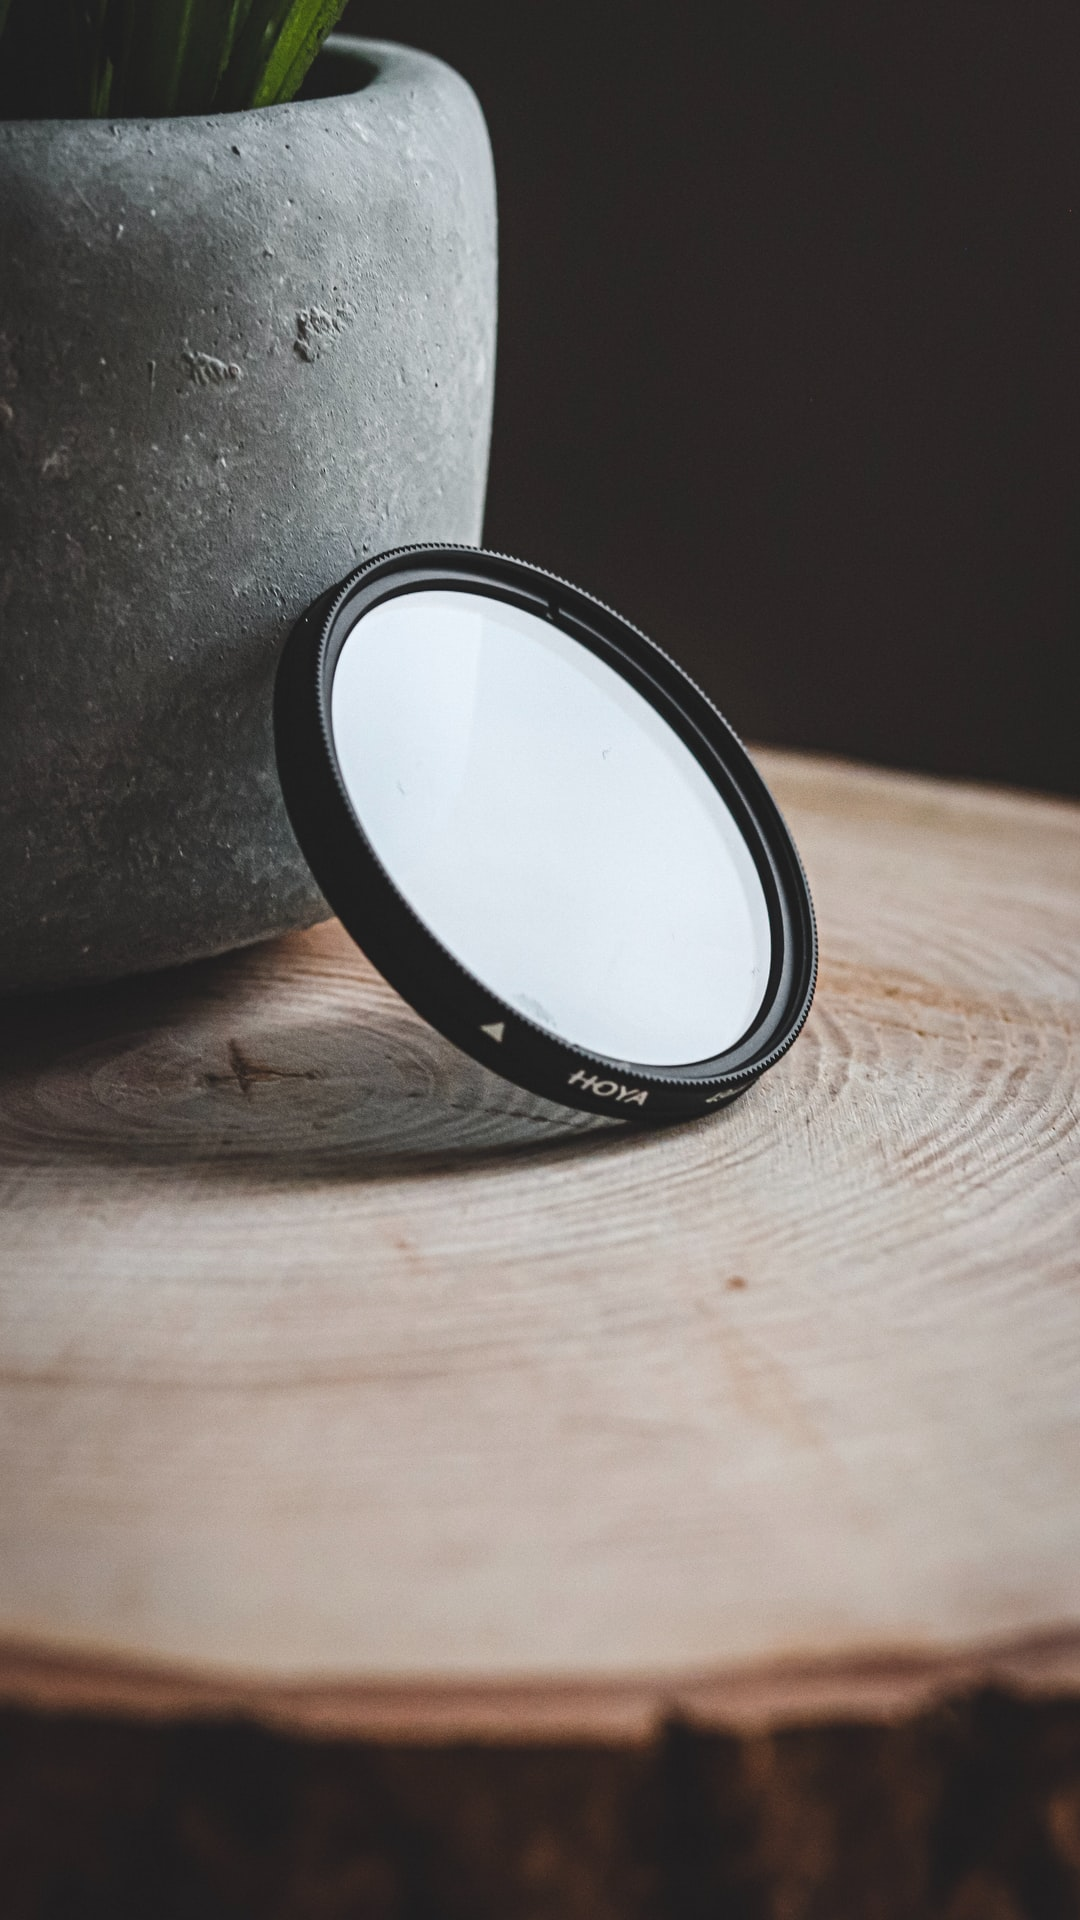 A polariser lens catching the day light.